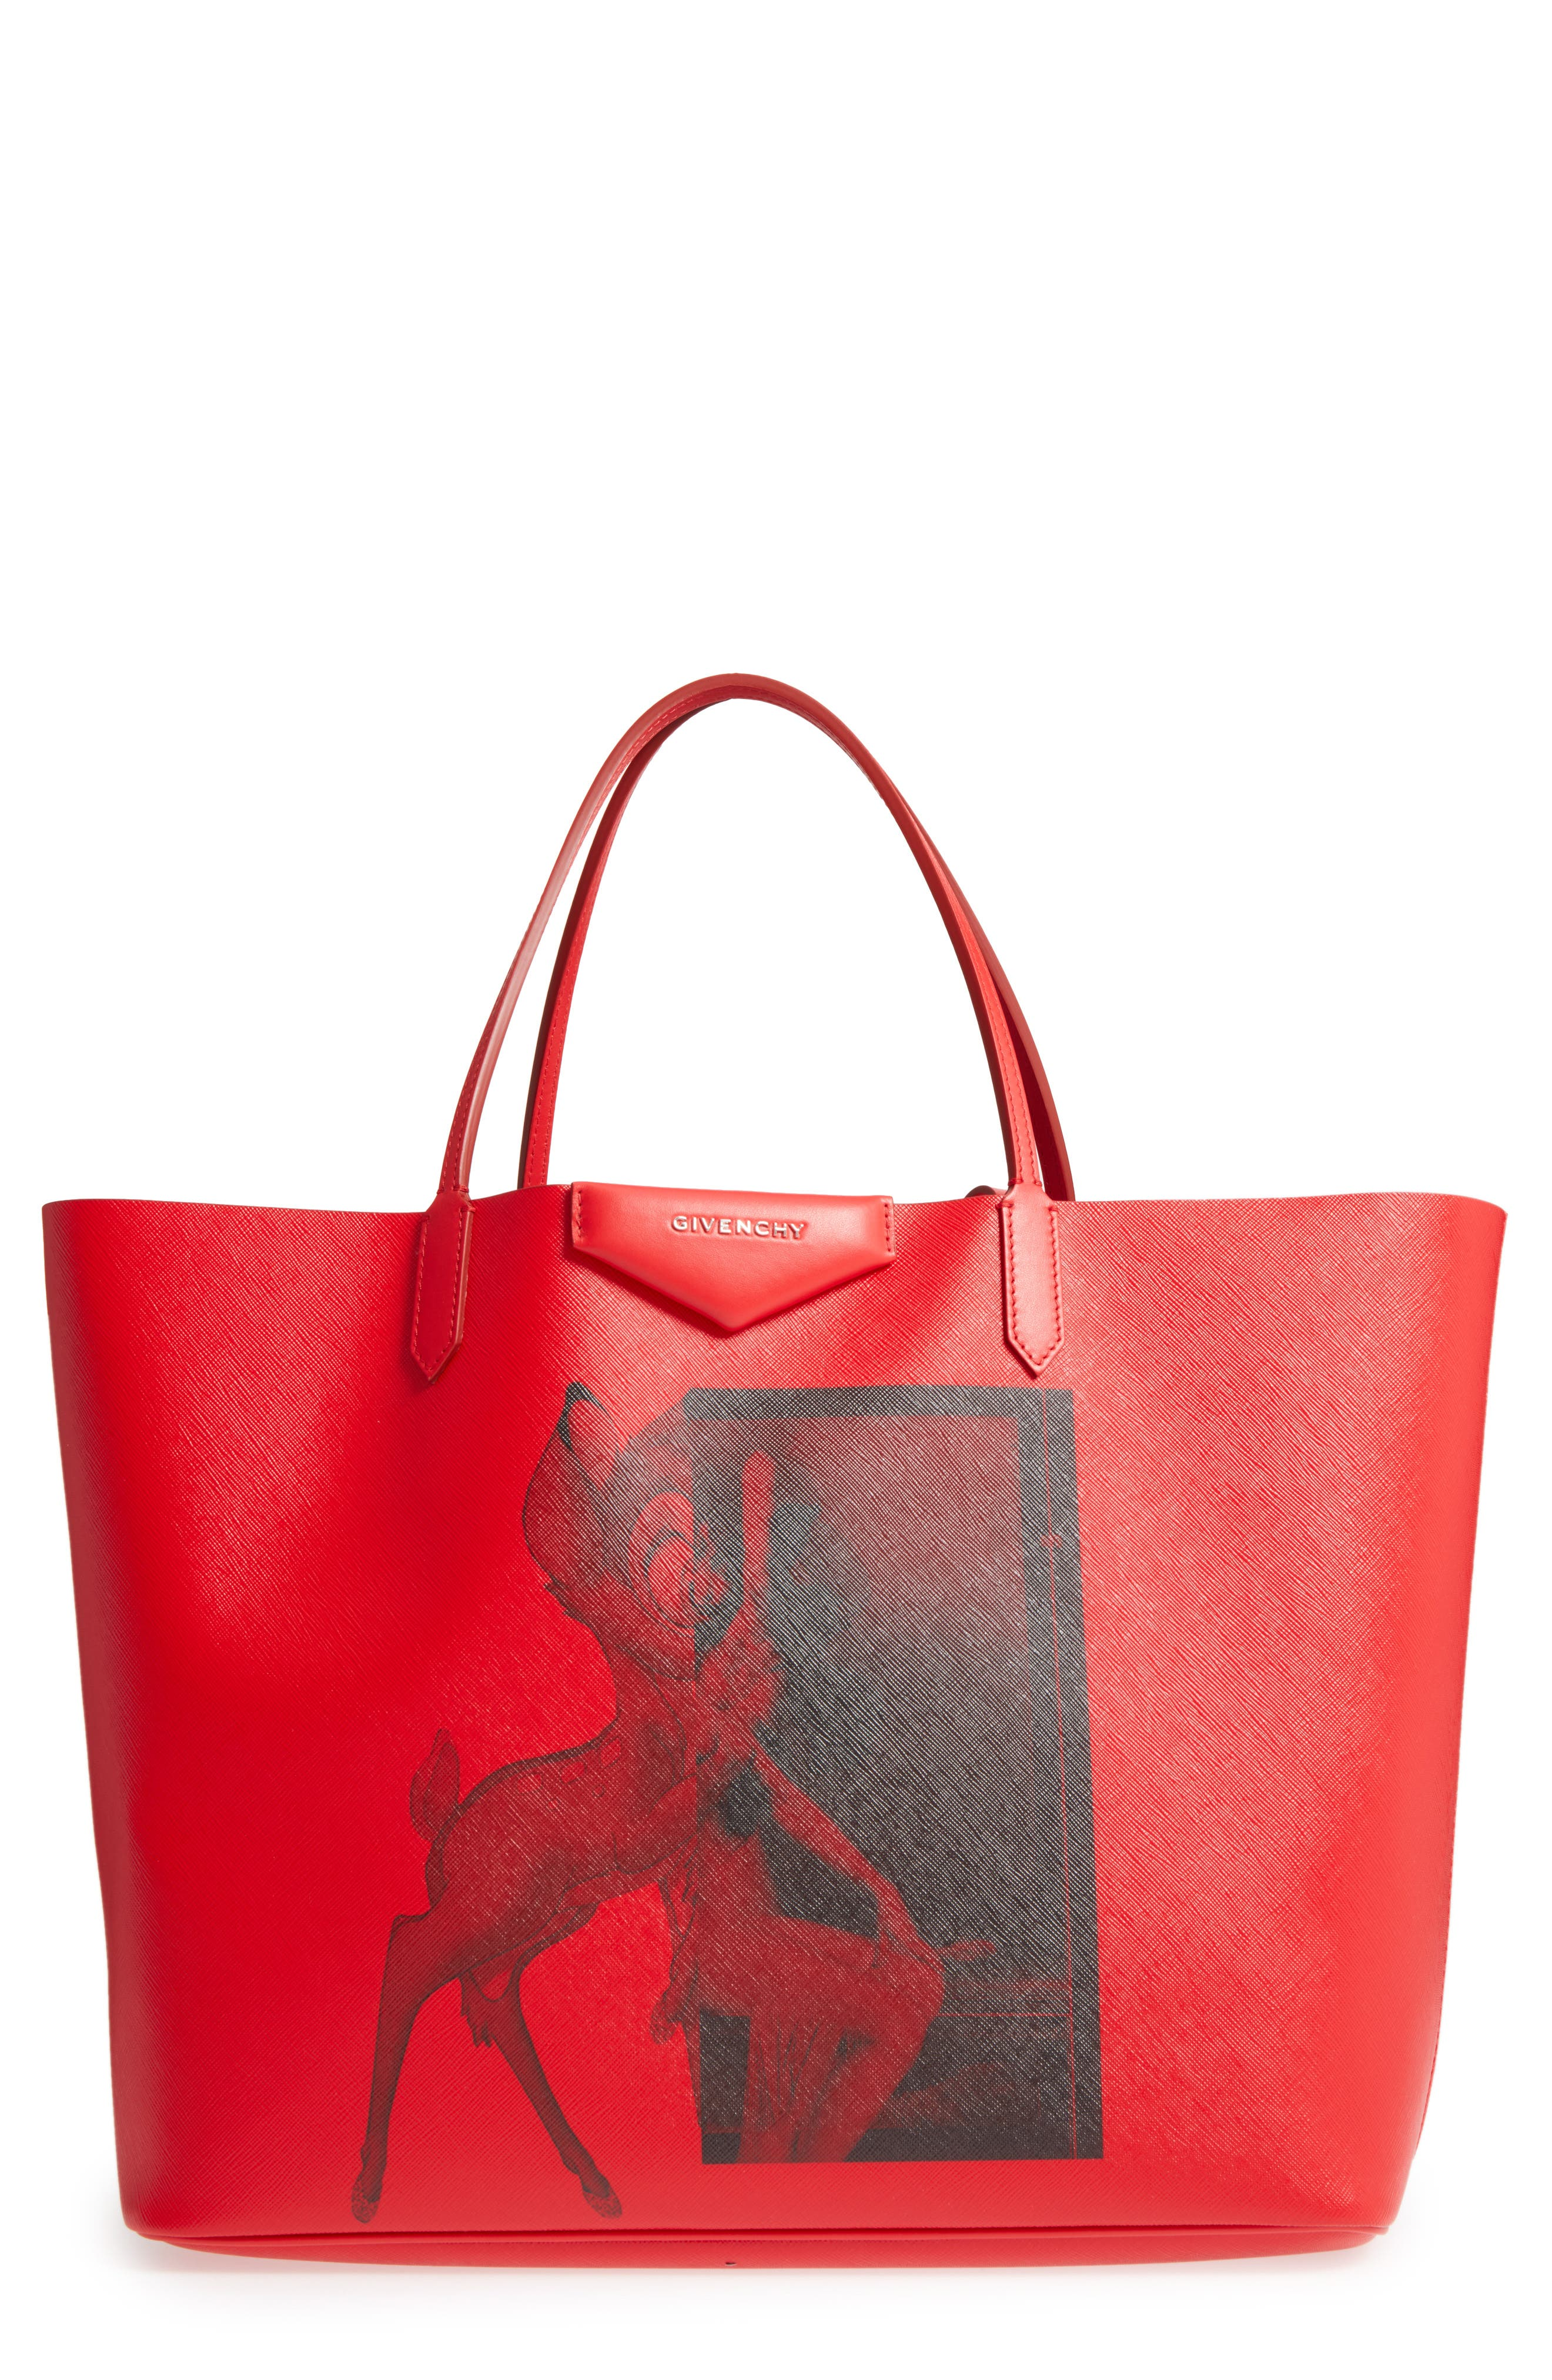 Givenchy Antigona - Bambi Print Coated CanvasTote